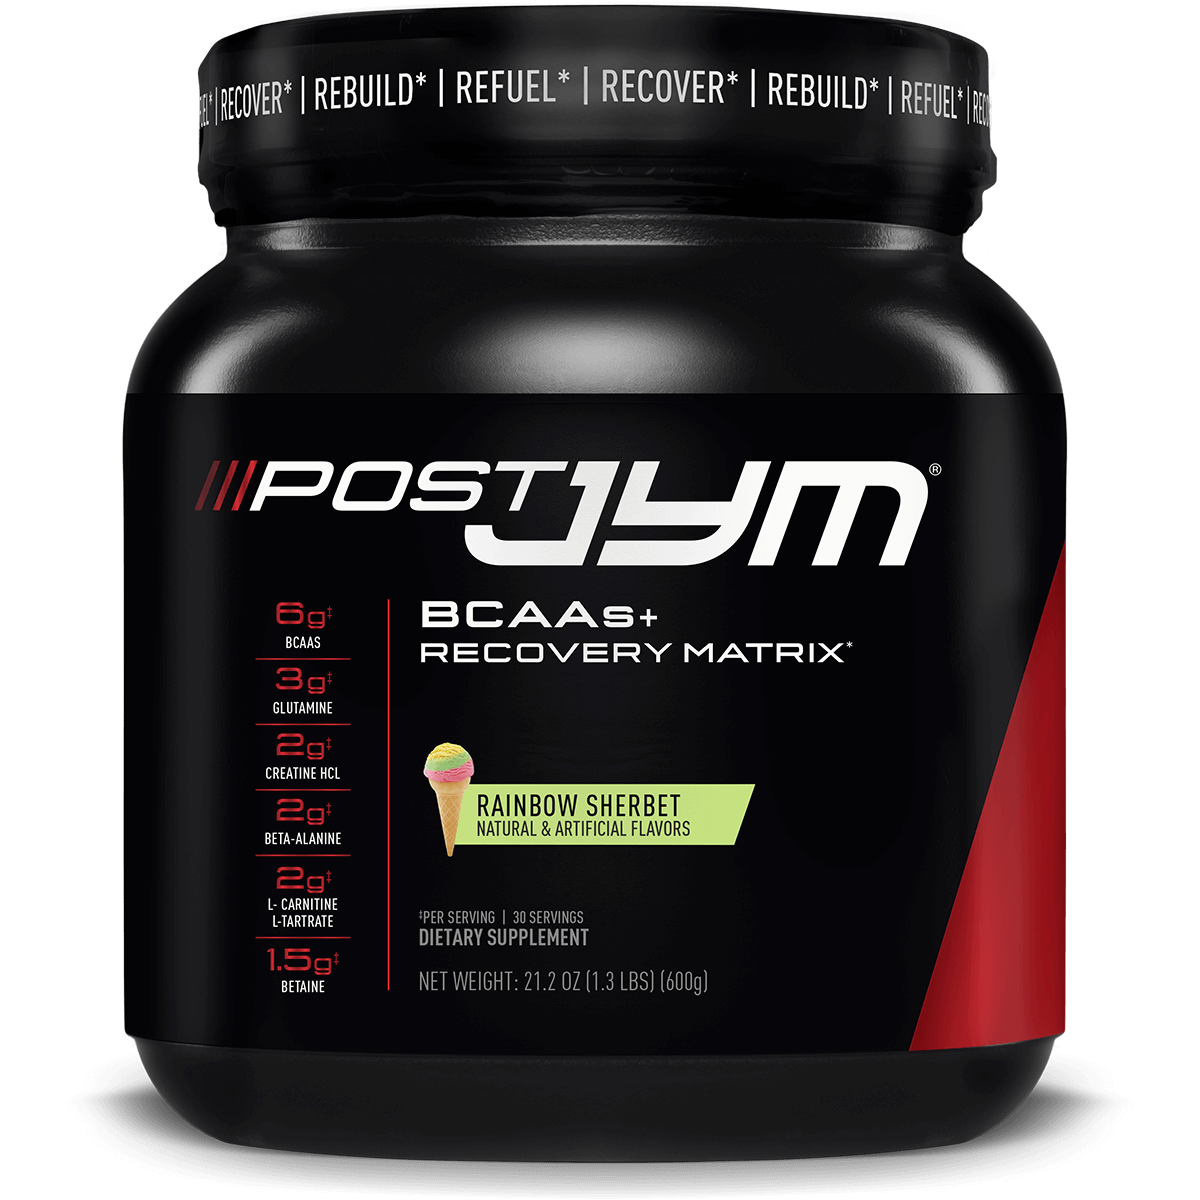 JYM Post-Jym BCAAs+ Recovery Matrix (30 Servings) - Rainbow Sherbet Bodybuilding Warehouse Supplement Science